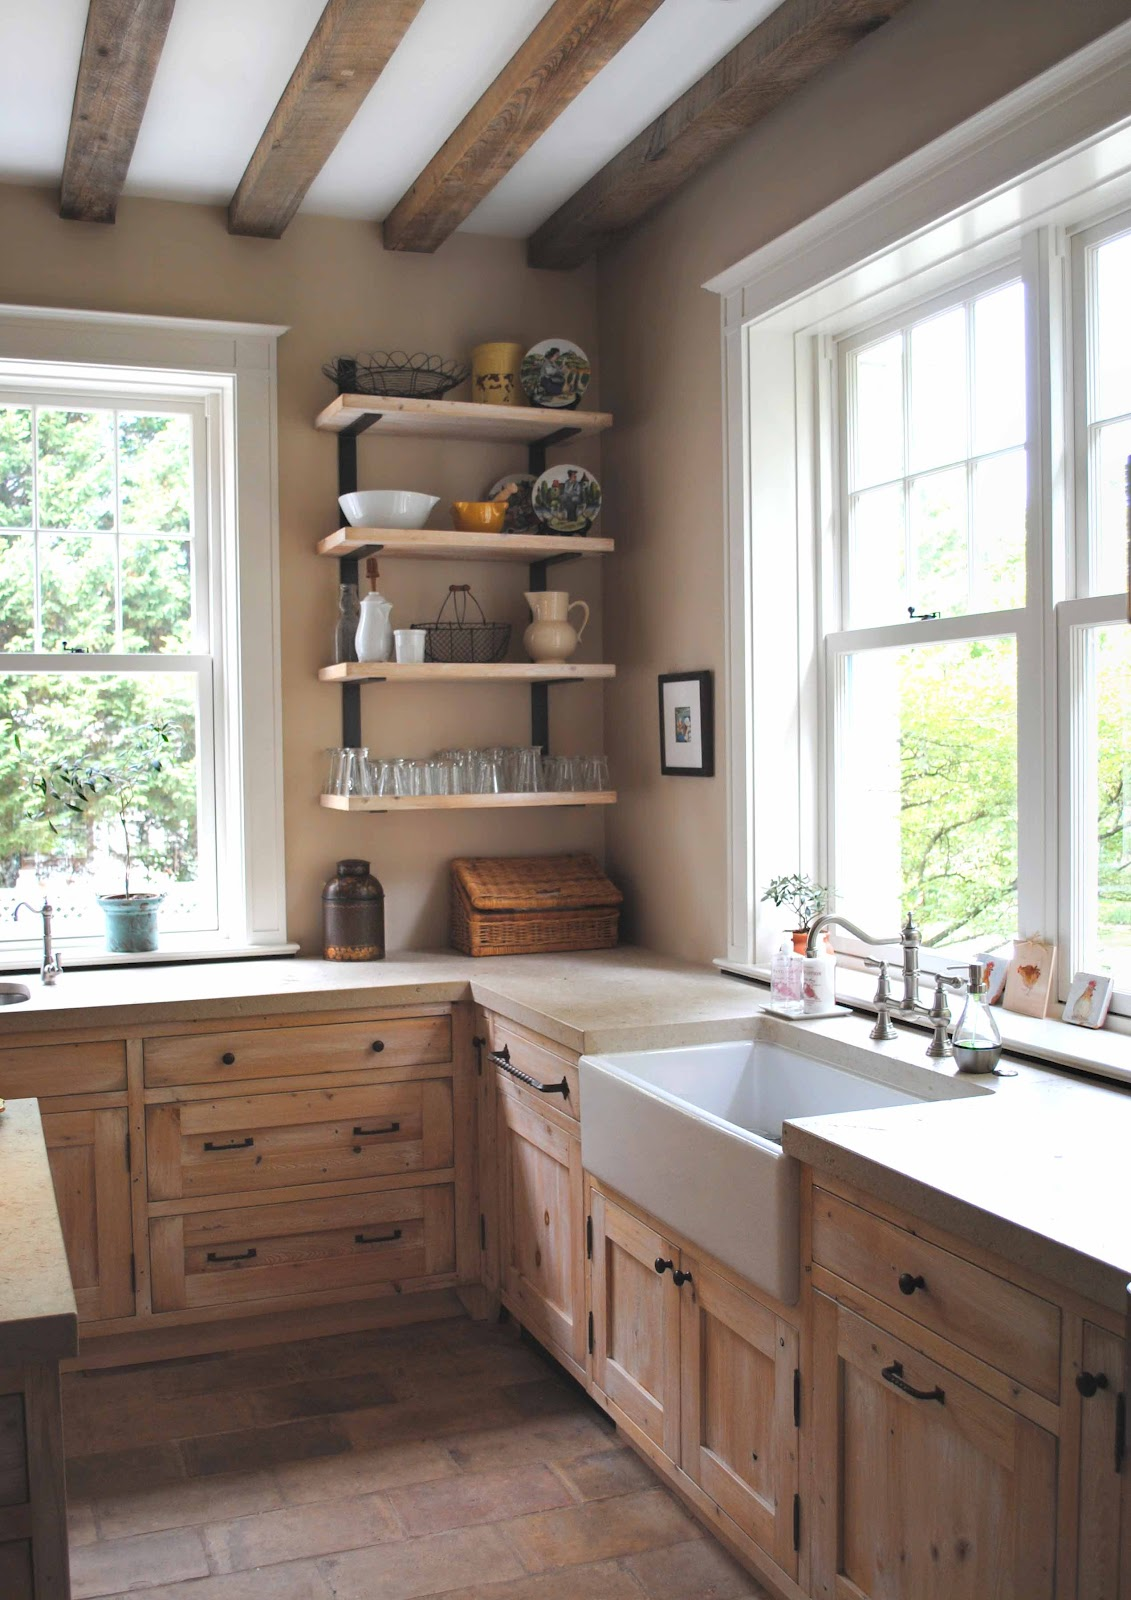 23 Best Rustic Country Kitchen Design Ideas and ... on Farmhouse Rustic Kitchen Ideas  id=33443